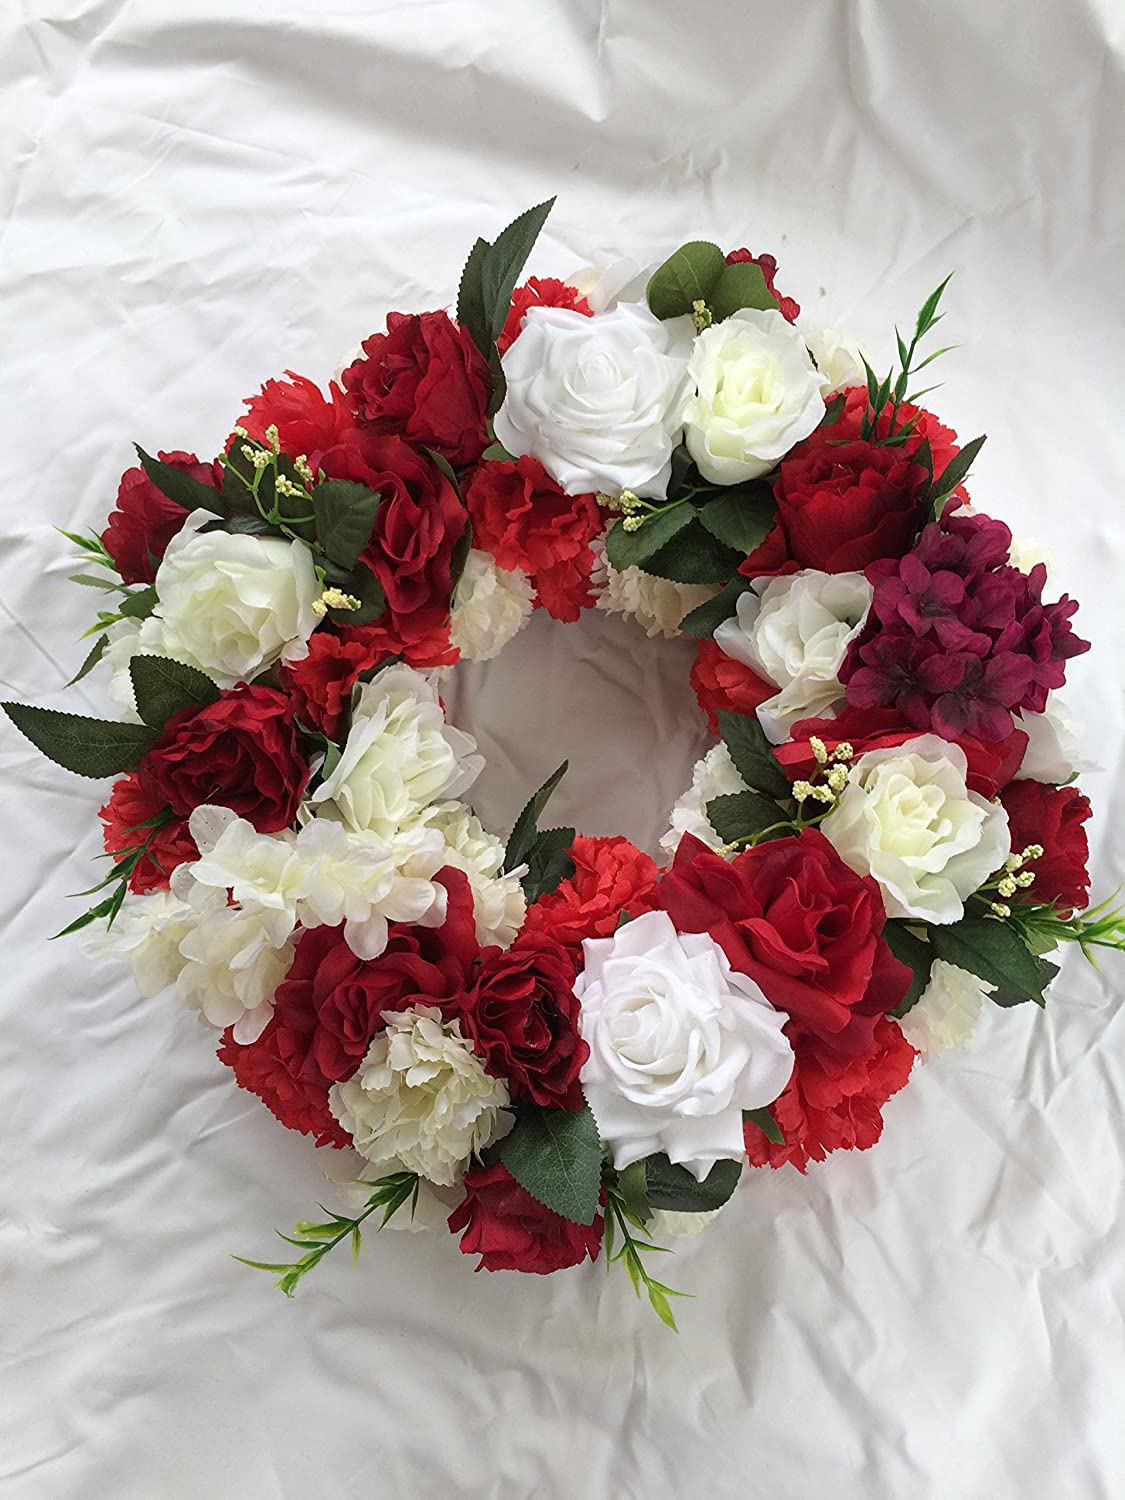 Red and white mix faux silk floral funeral wreath amazon red and white mix faux silk floral funeral wreath amazon kitchen home izmirmasajfo Images